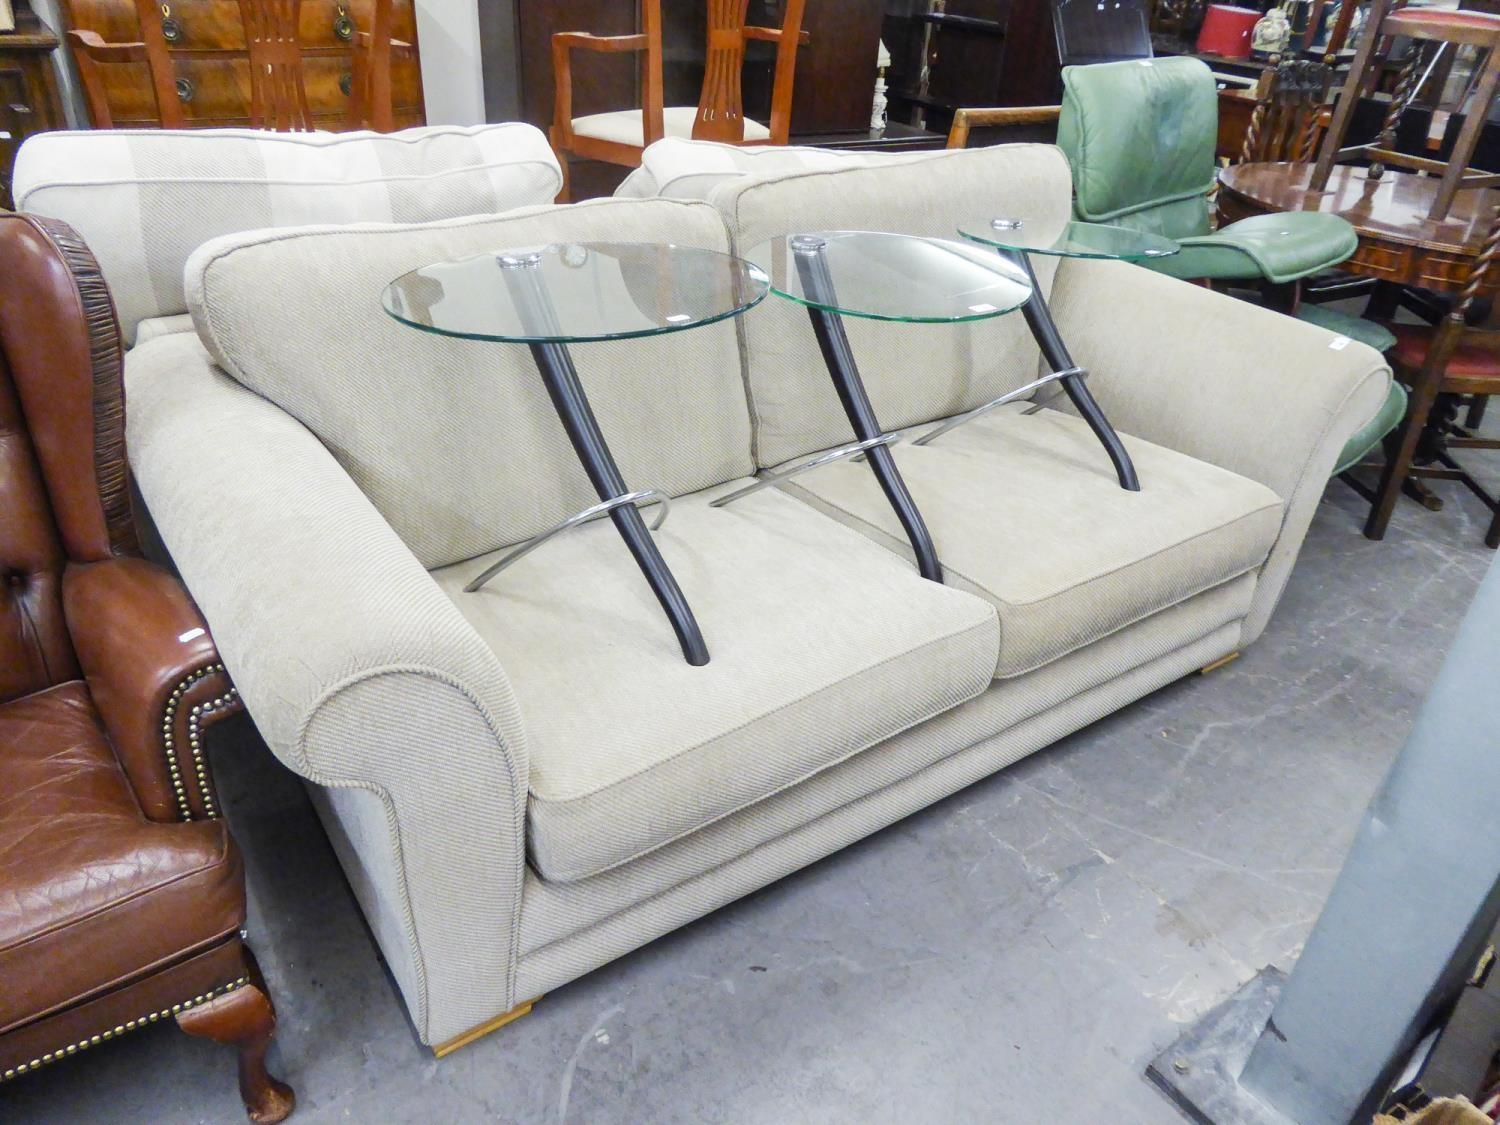 AN AS NEW MODERN THREE SEATER SETTEE IN FAWN CORD UPHOLSTERY